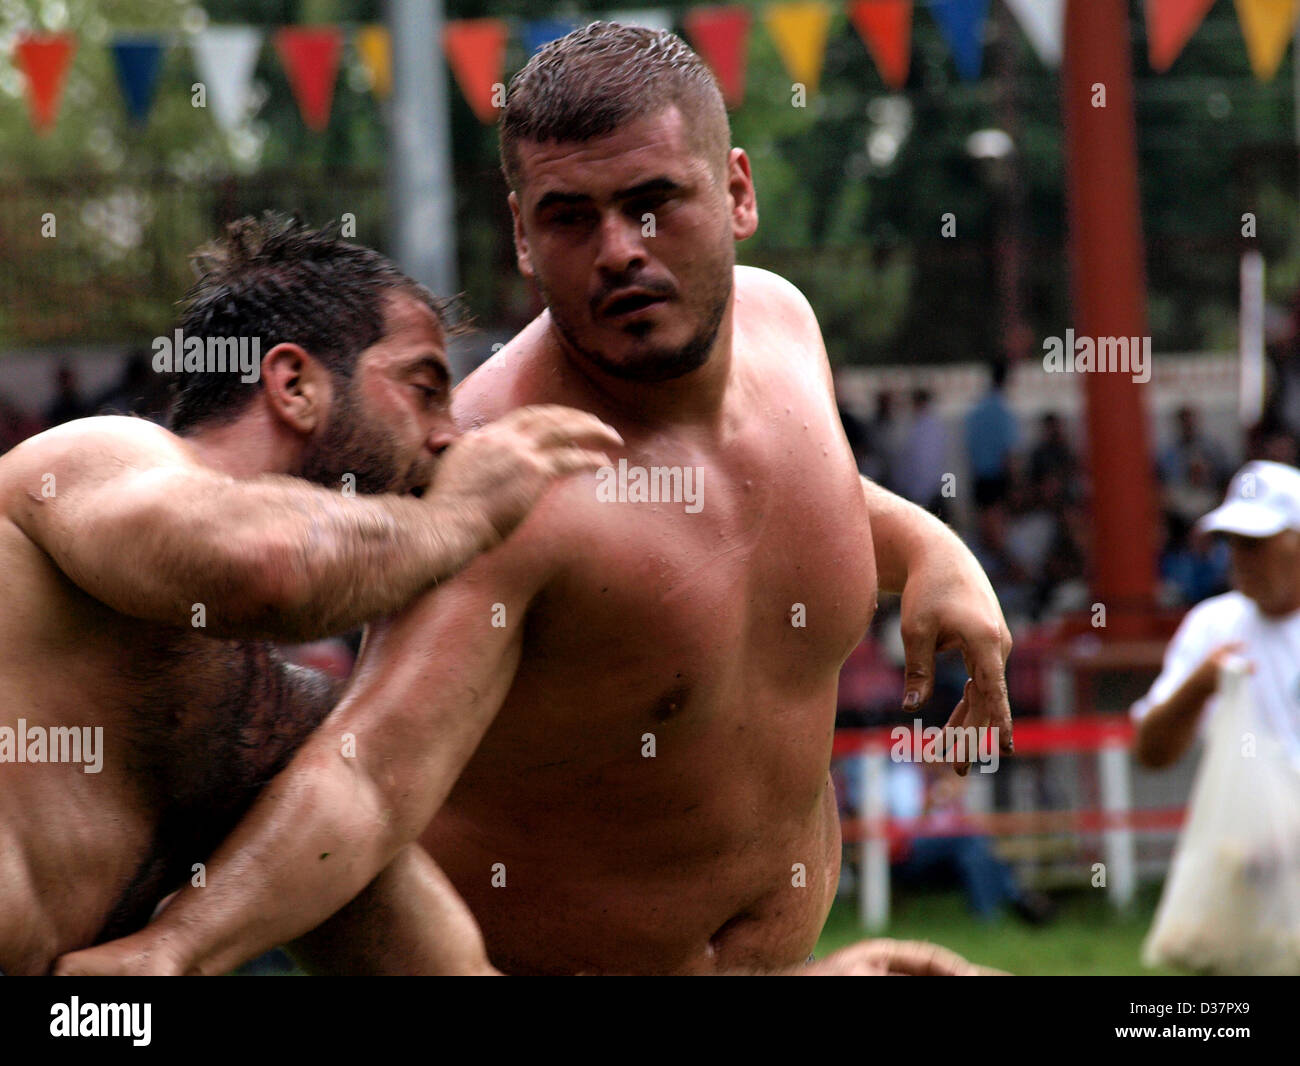 Men Oil Wrestling 39